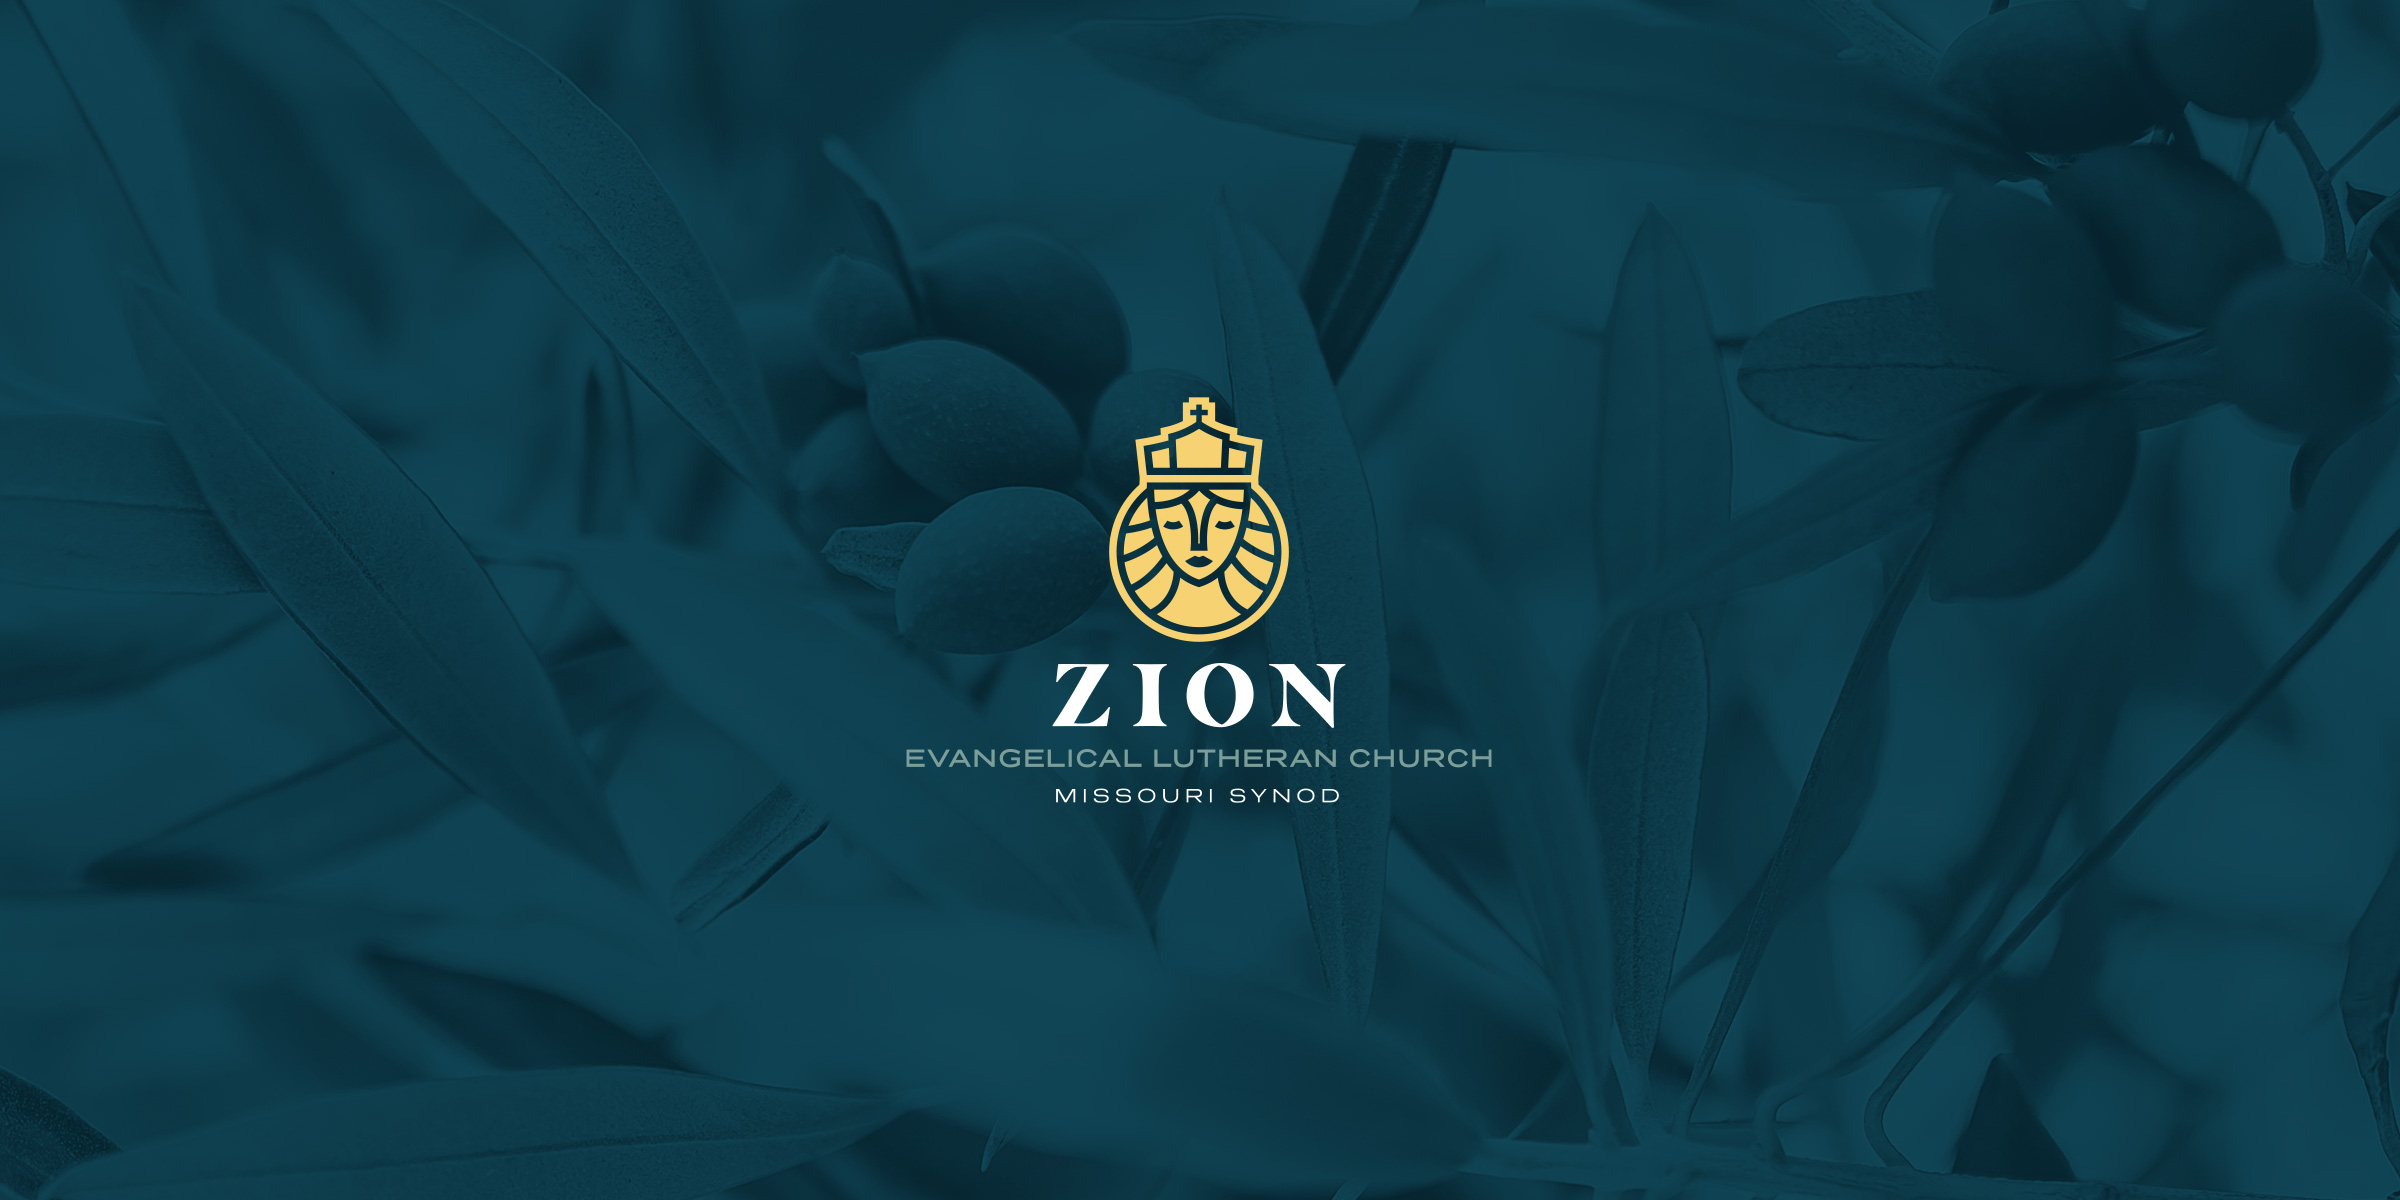 Zion-Church-SLO-Branding-01-logo-on-dark